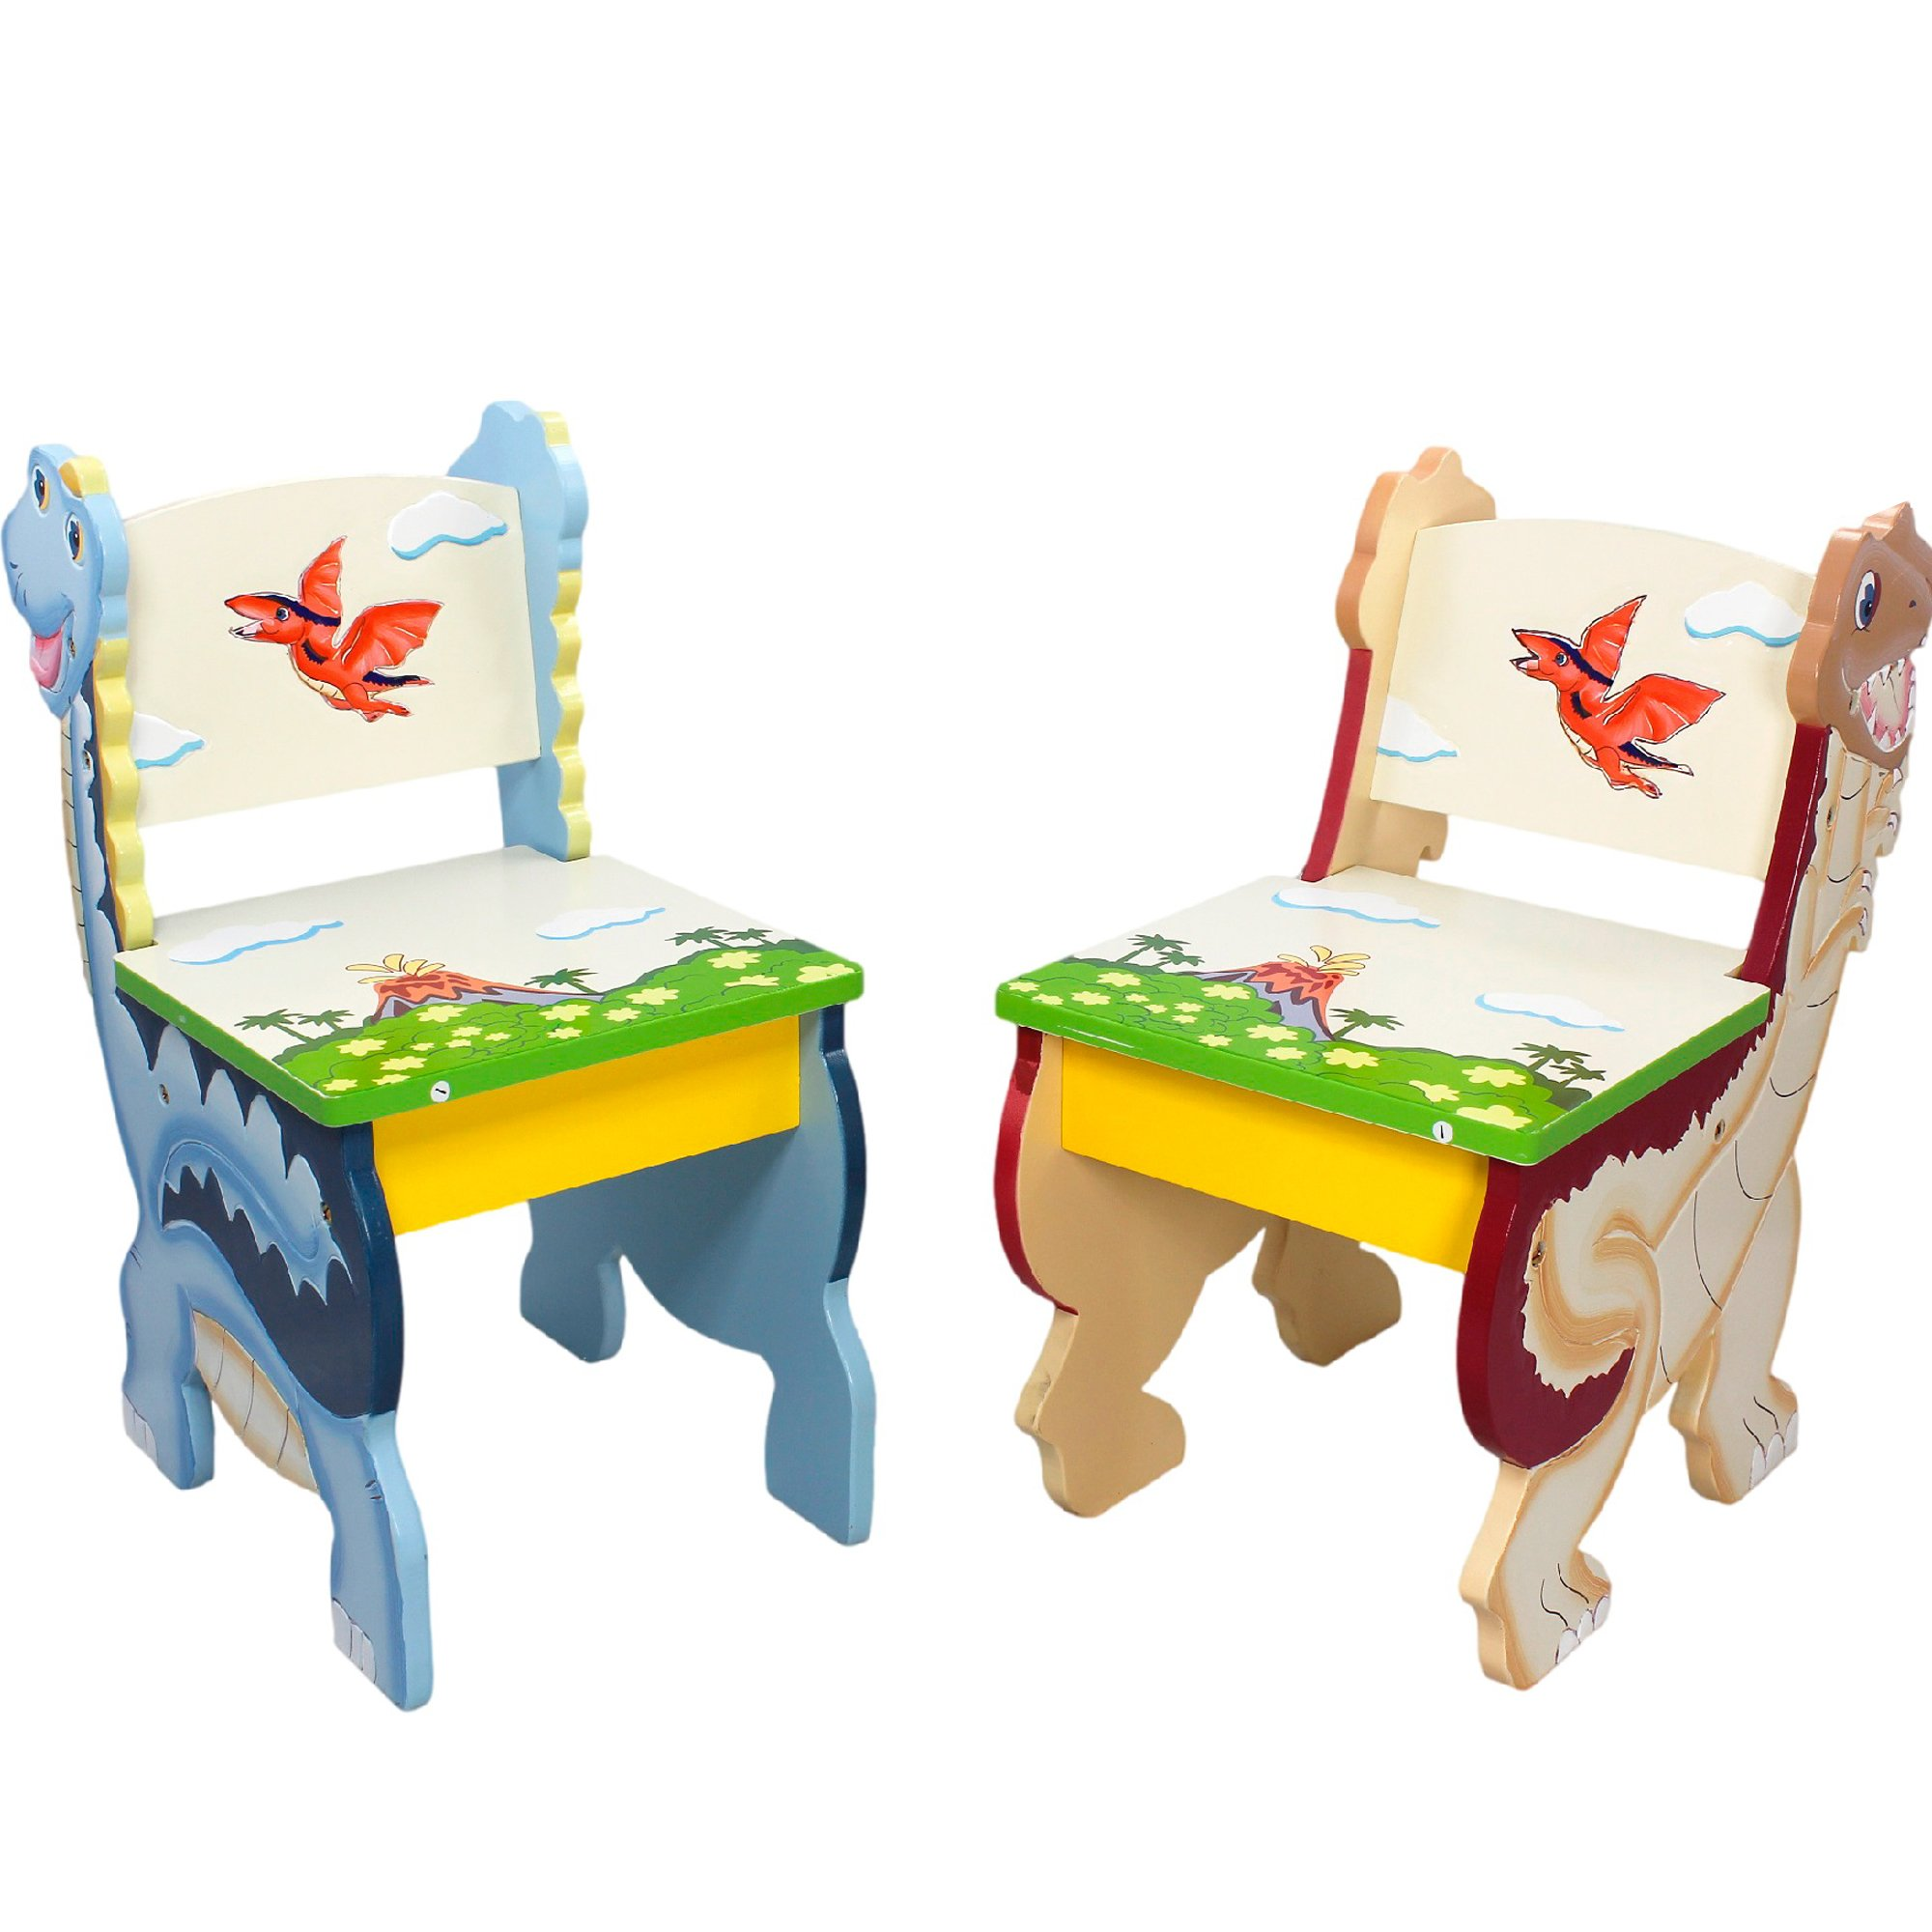 Fantasy Fields - Dinosaur Kingdom Thematic Kids Wooden 2 Chairs Set | Imagination Inspiring Hand Crafted & Hand Painted Details   Non-Toxic, Lead Free Water-based Paint